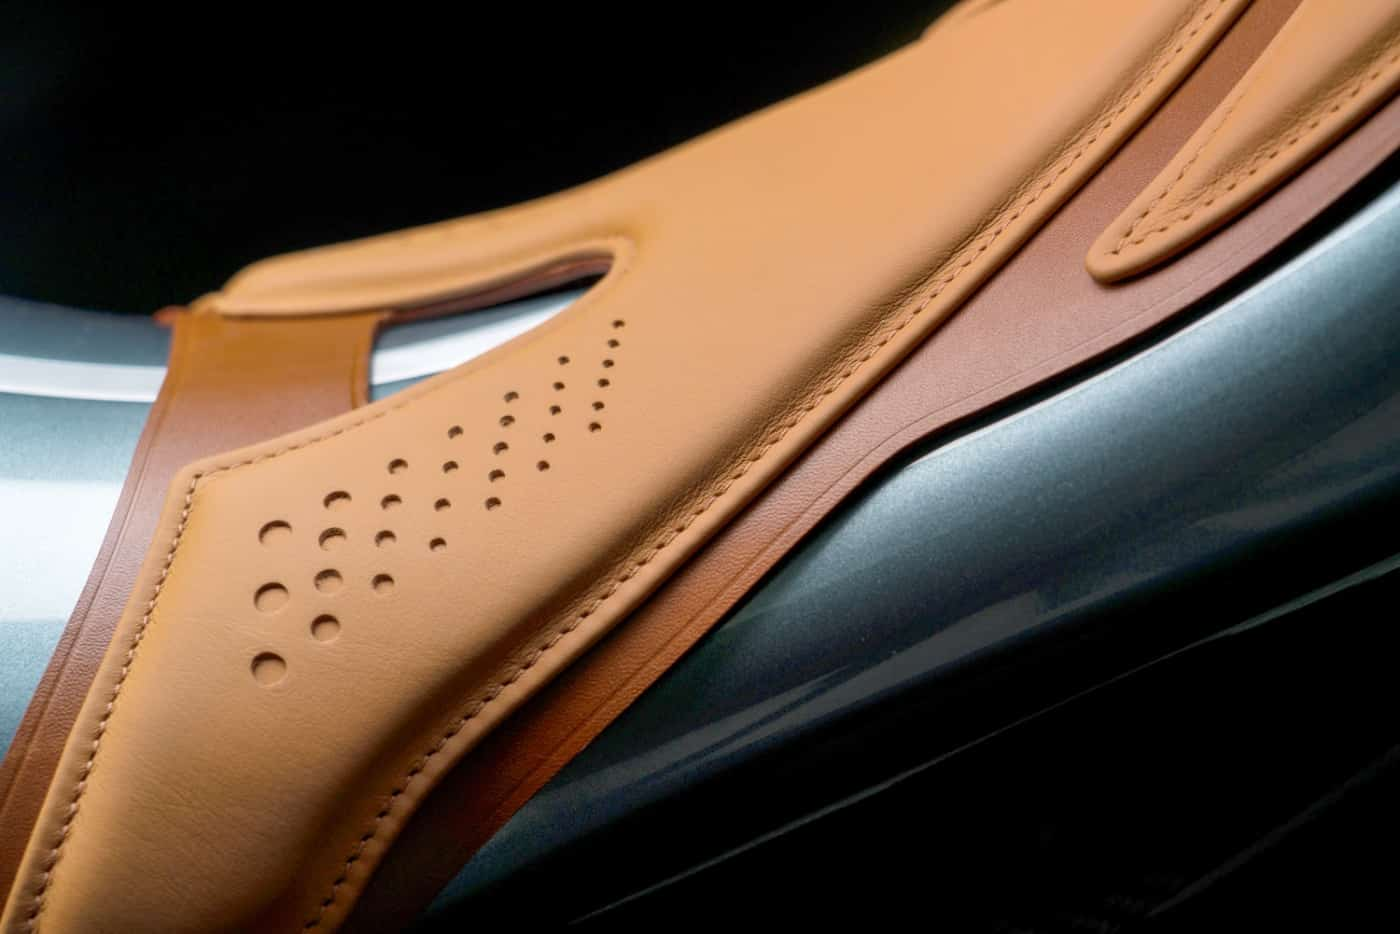 The AMP 001 By Aston Martin And Brough Superior